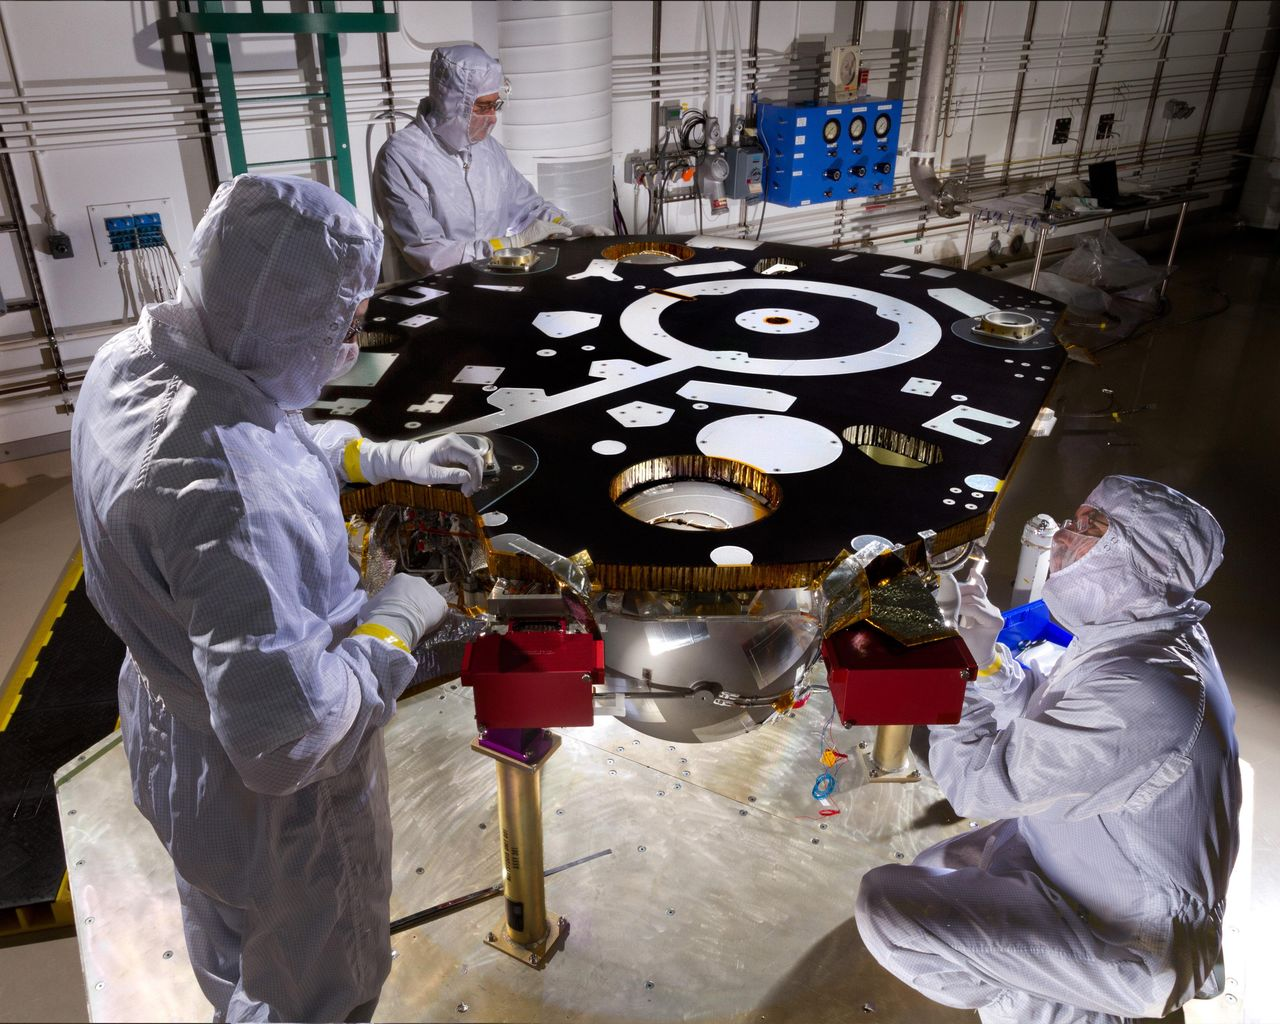 Space Images Work on NASAs InSight Lander Starts New Phase 1280x1024